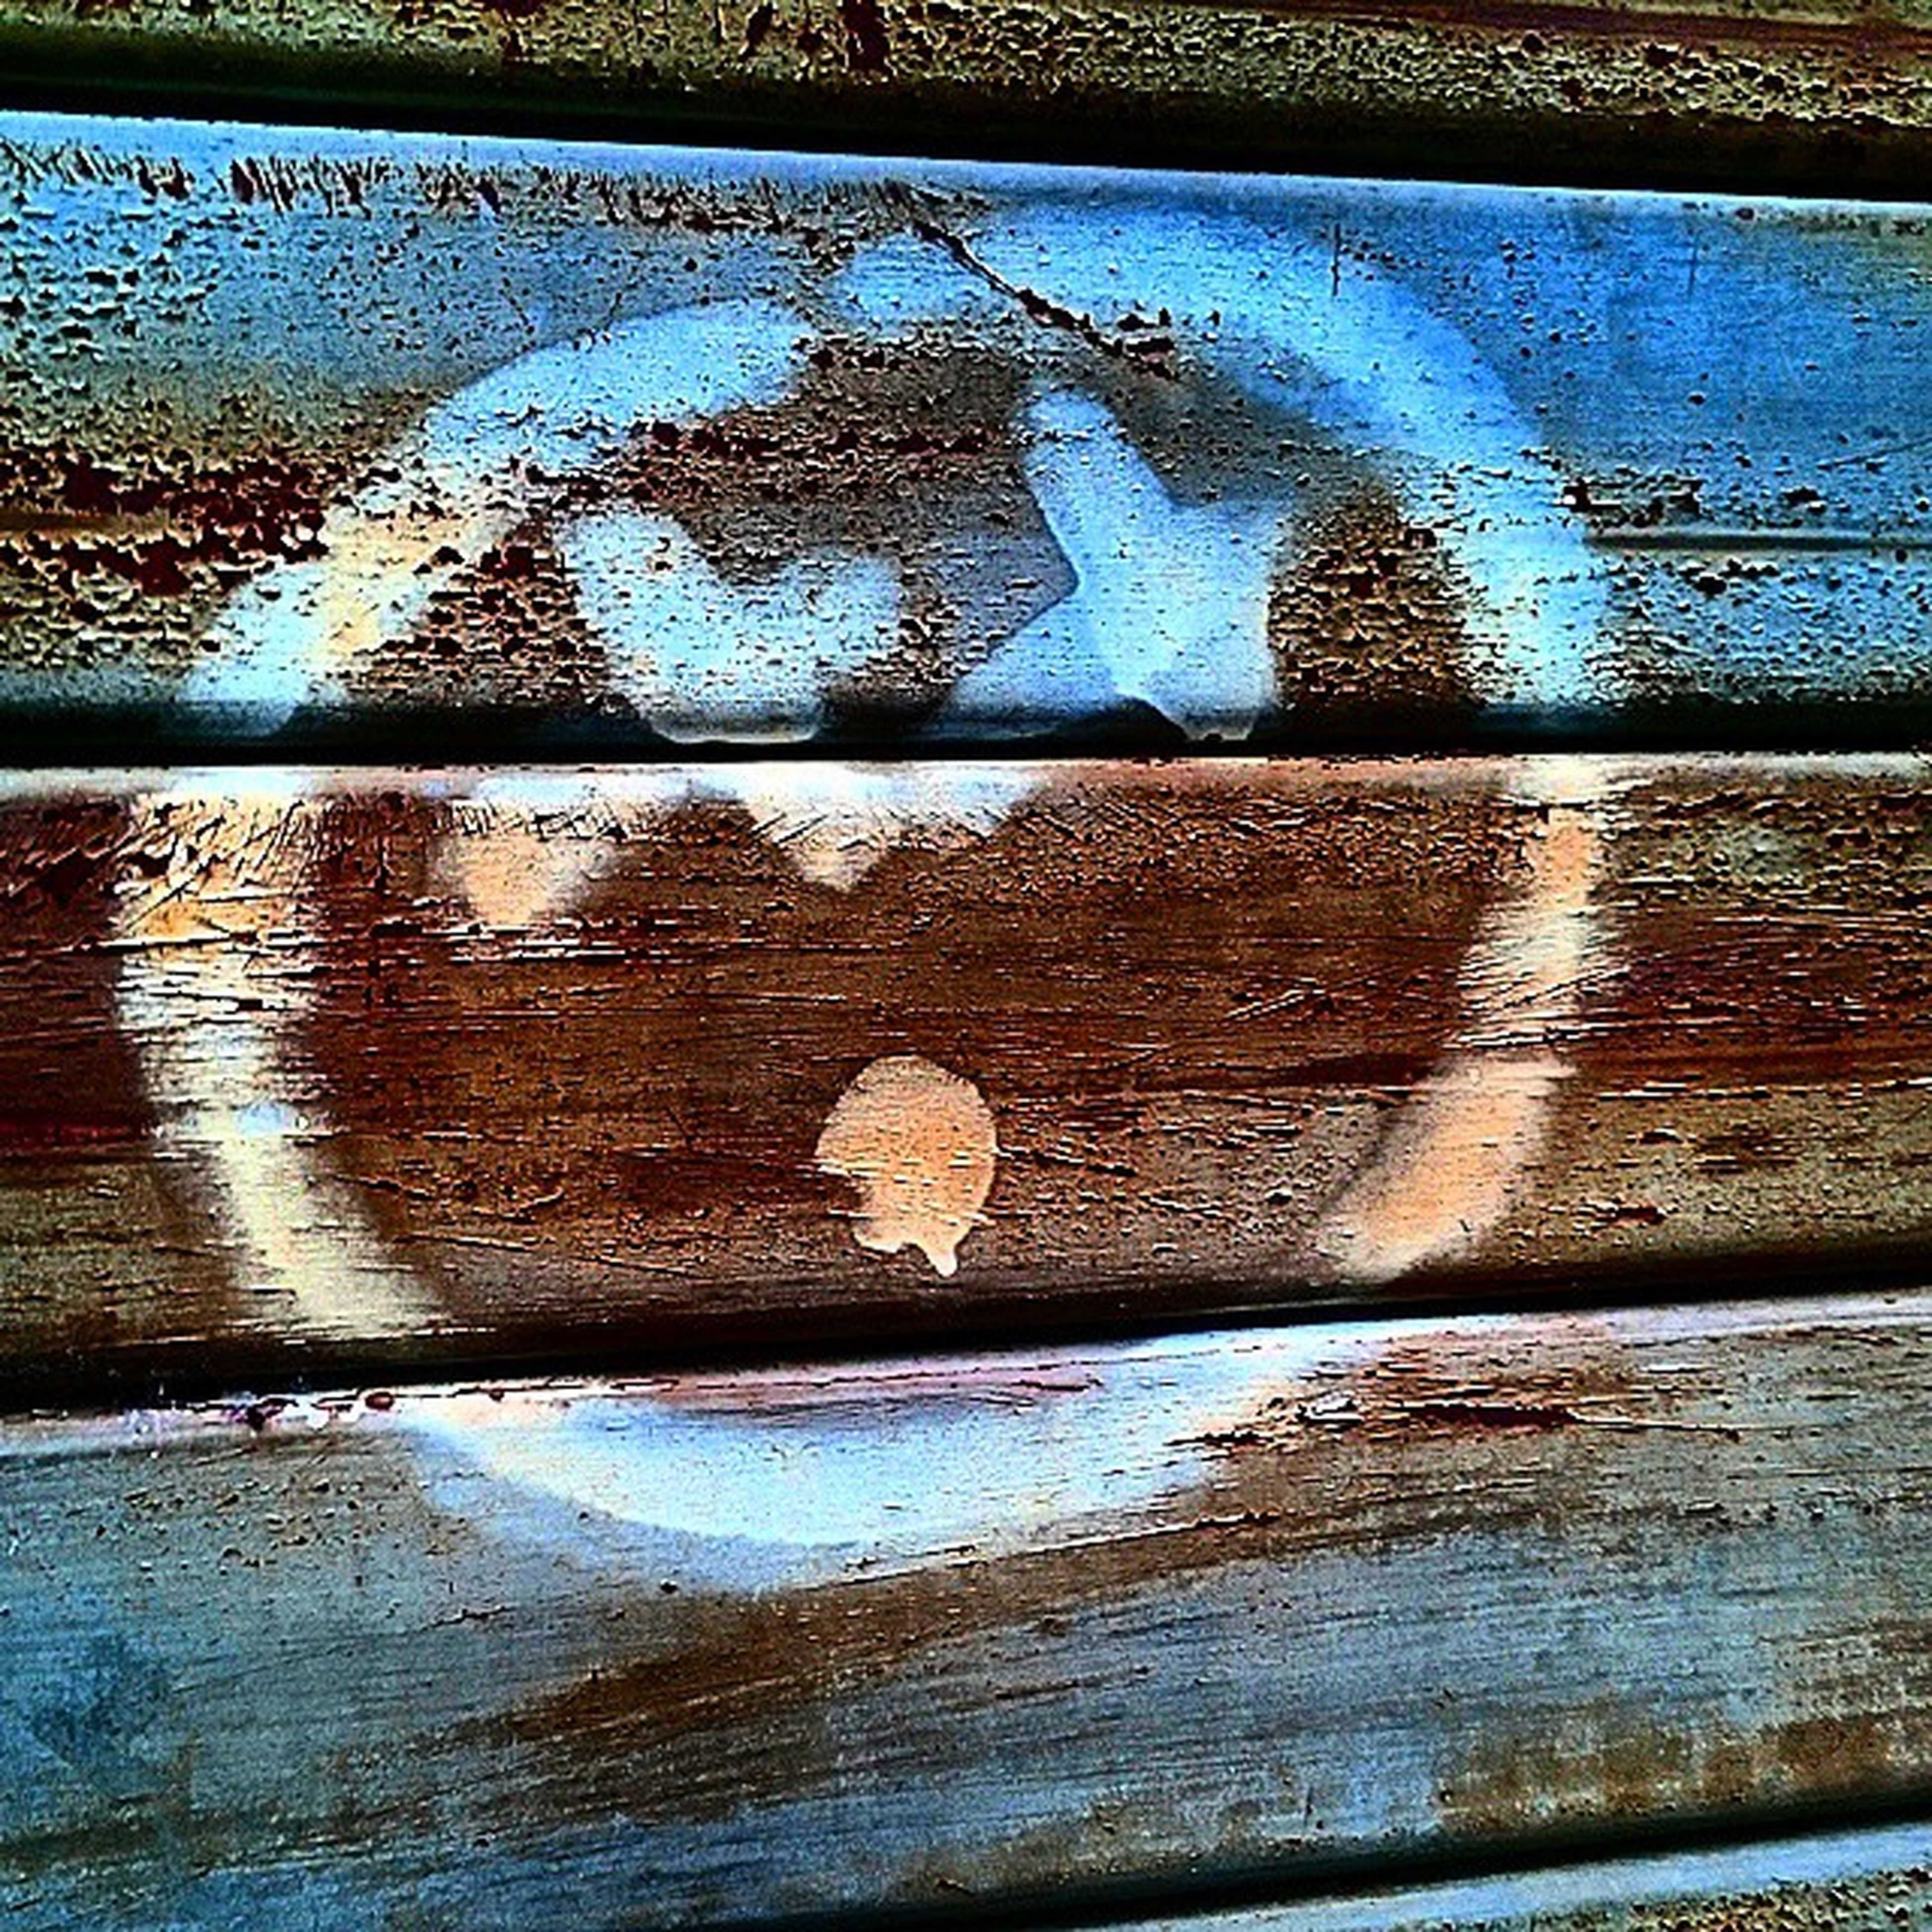 full frame, backgrounds, weathered, wood - material, water, rusty, close-up, old, textured, pattern, deterioration, blue, damaged, metal, wooden, run-down, obsolete, built structure, no people, metallic